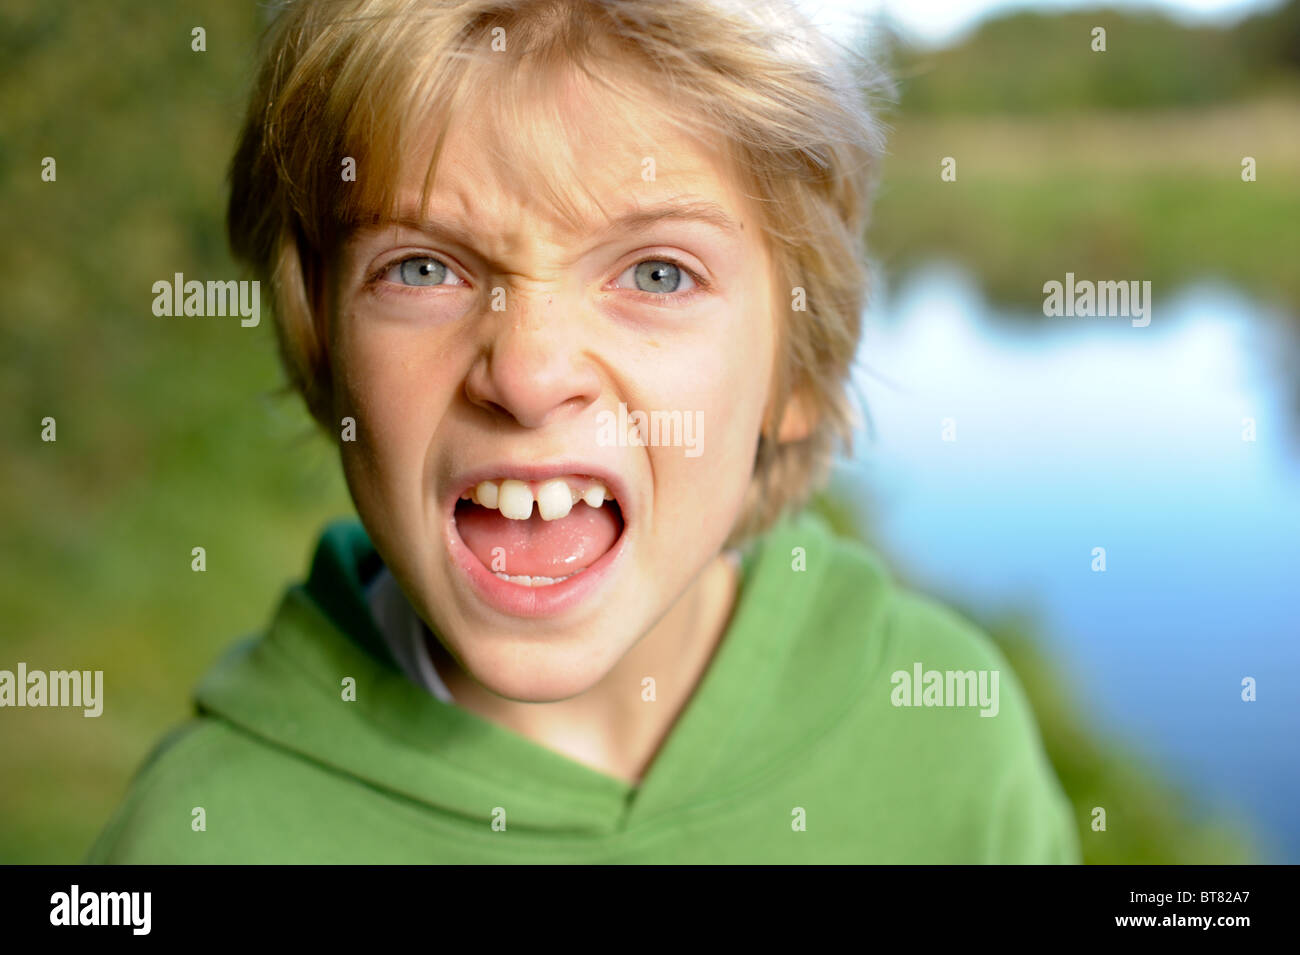 Animated young boy shouts and screams looking directly at the camera - Stock Image